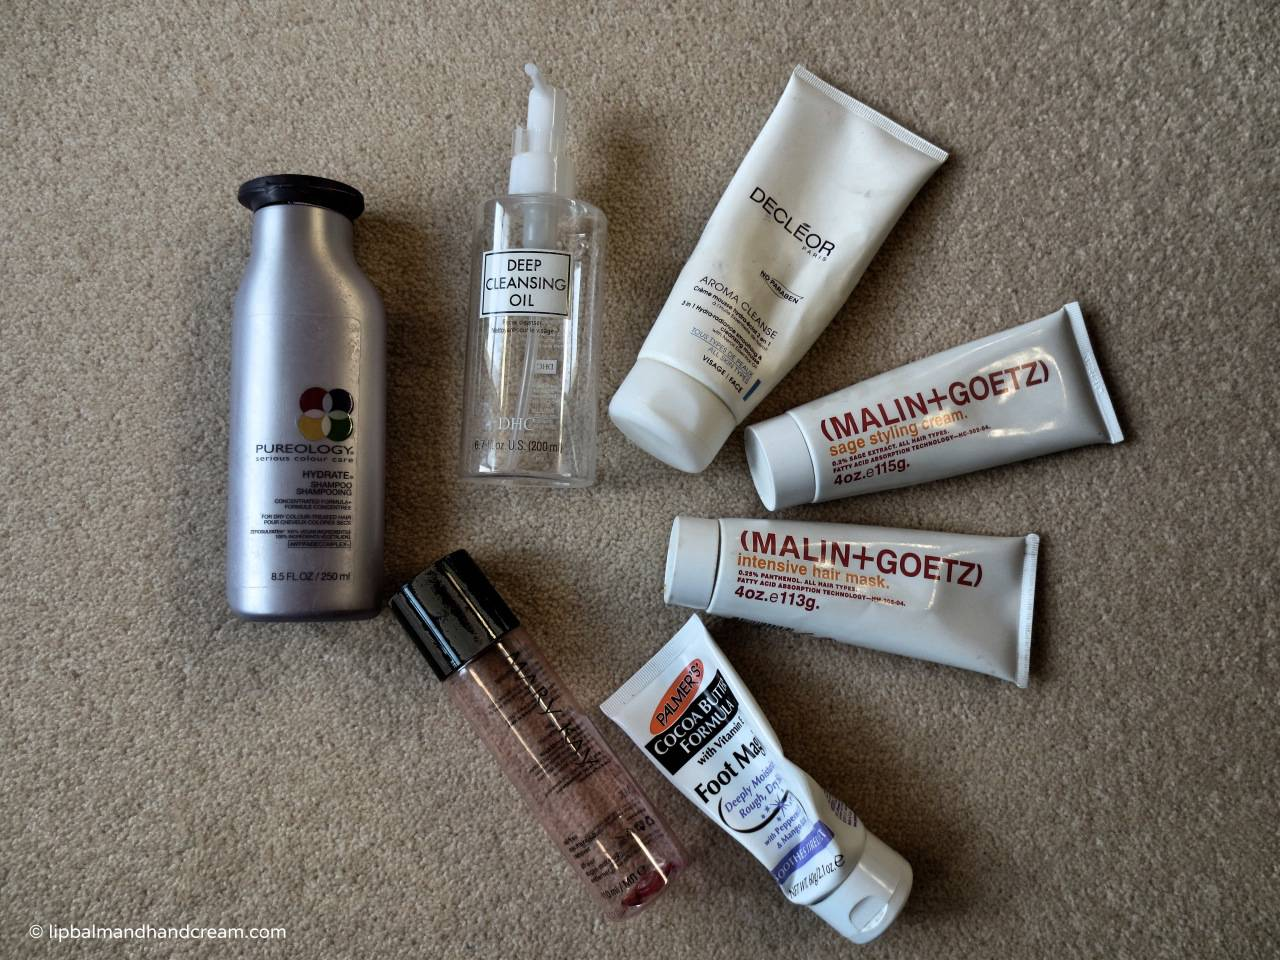 December empties from Pureology, DHC, Decleor, Malin + Goetz, Palmer's and Mary Kay